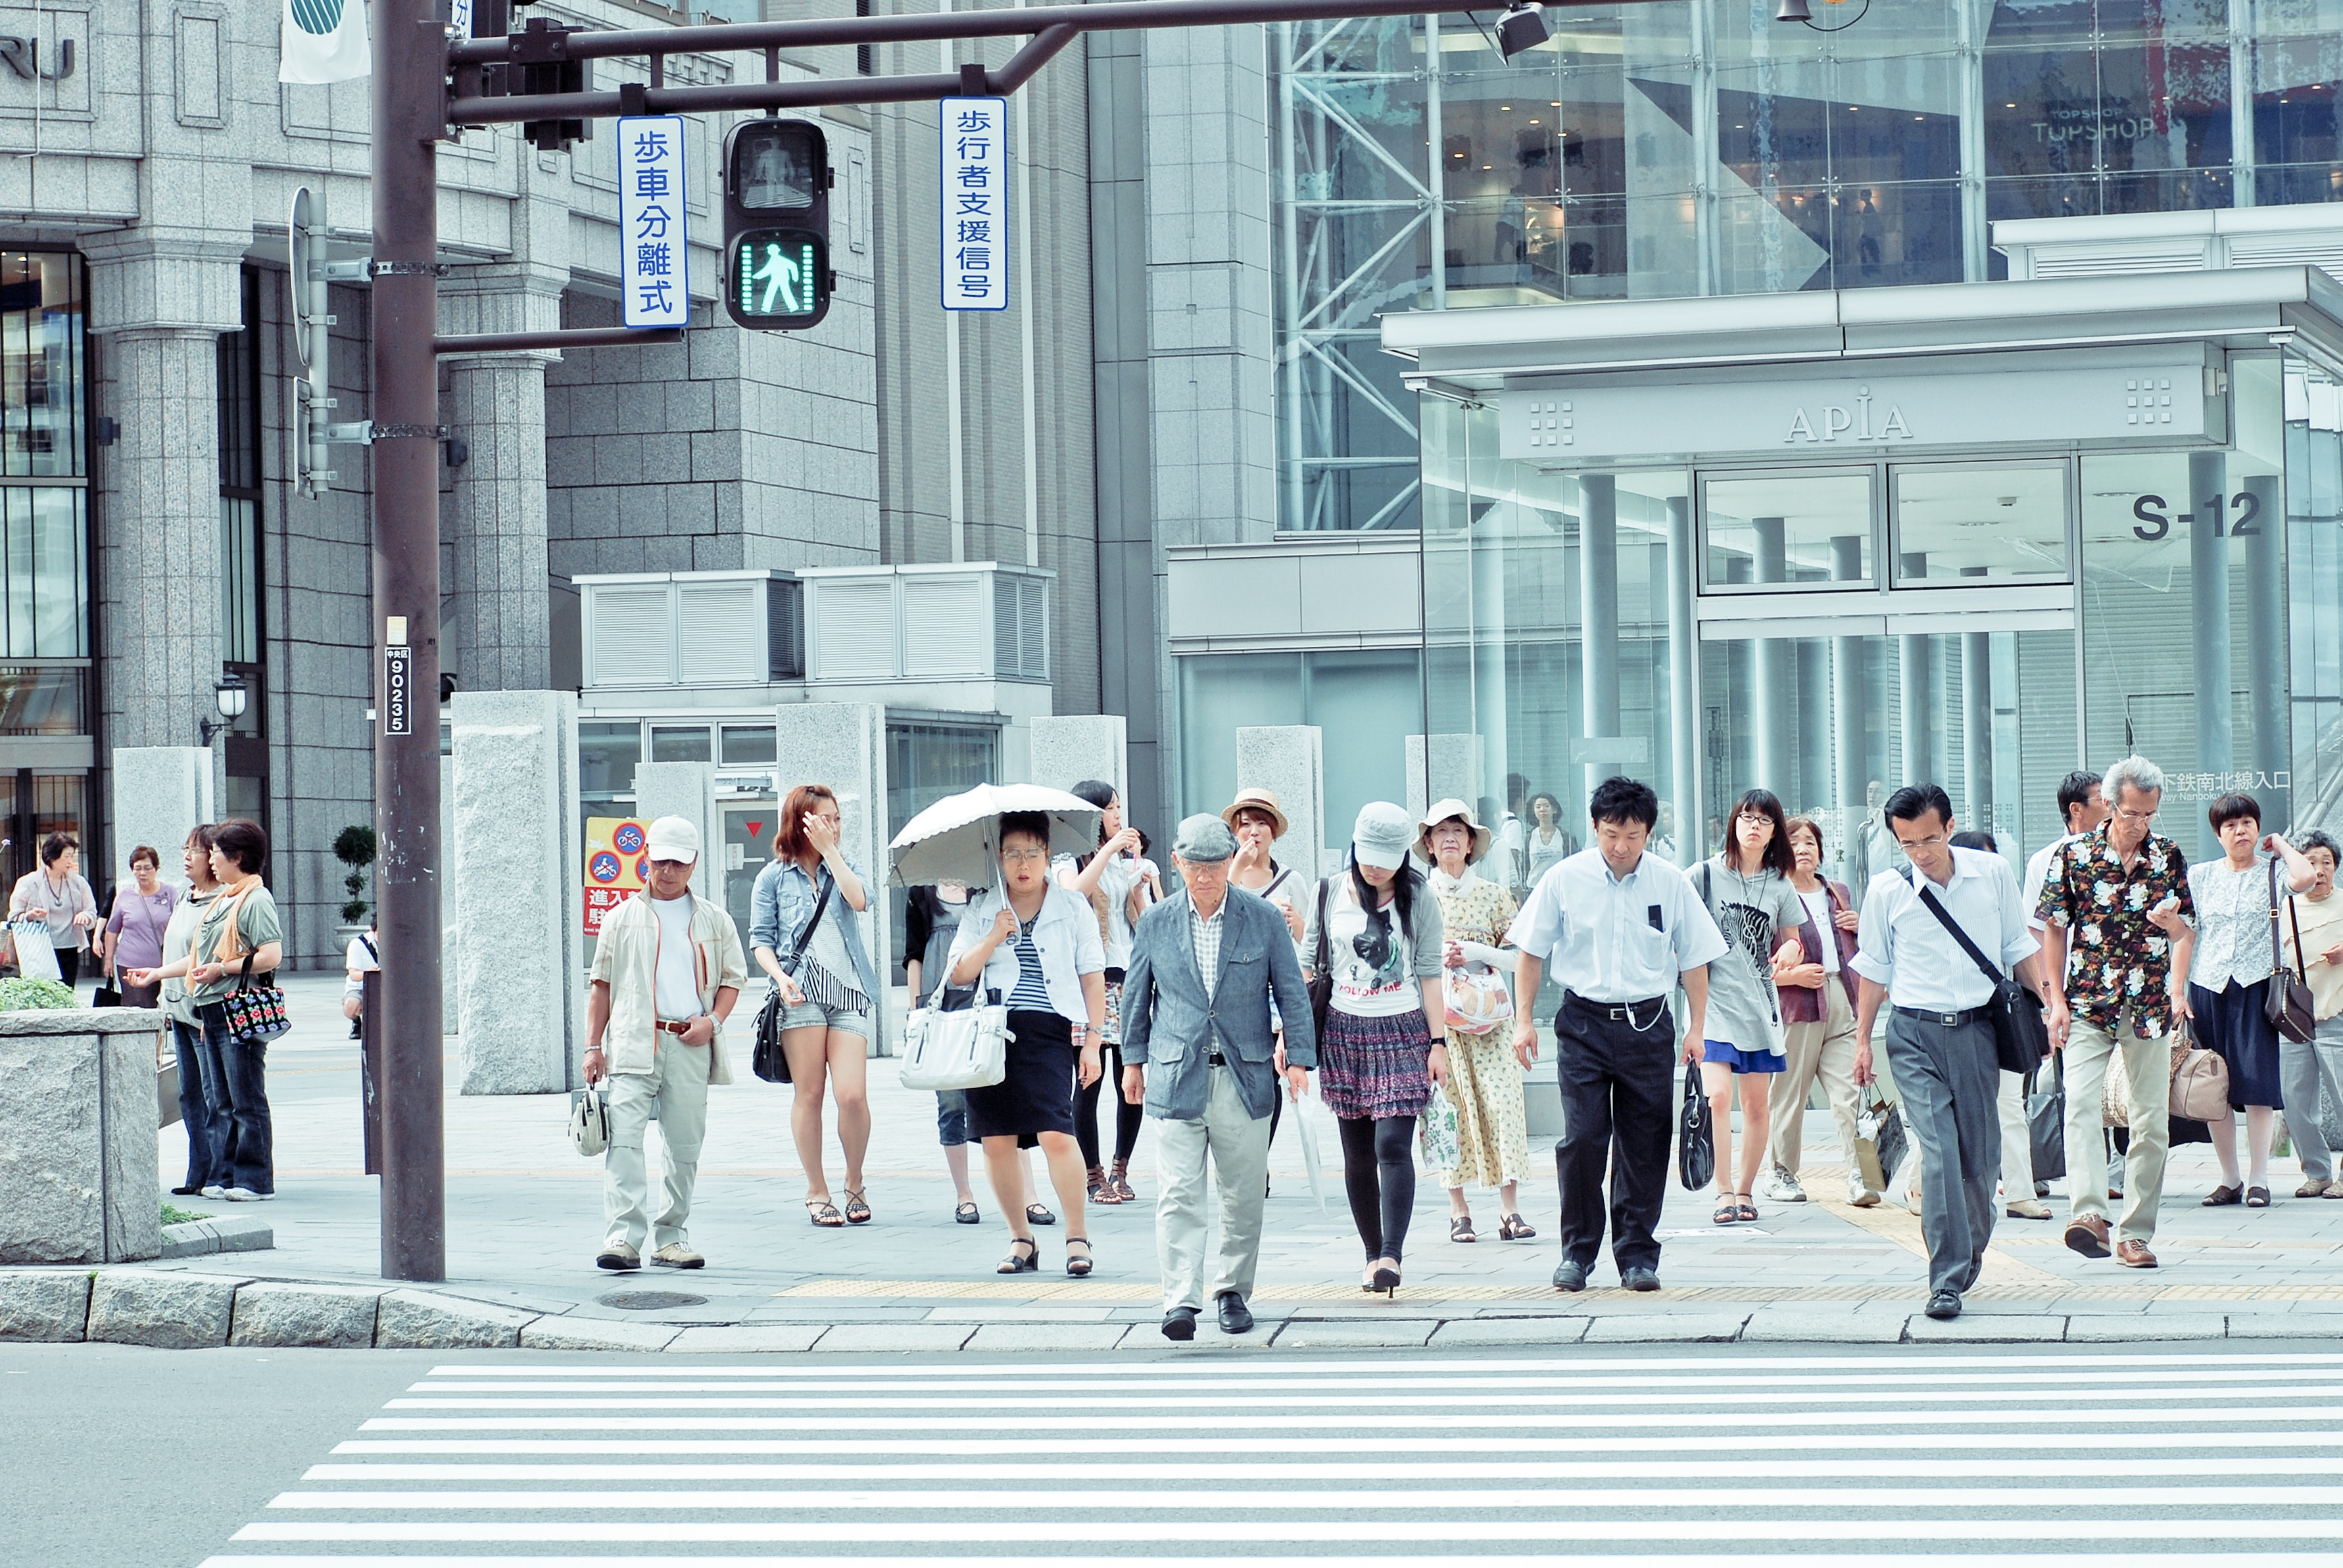 Pedestrians waiting to cross a street in Sapporo